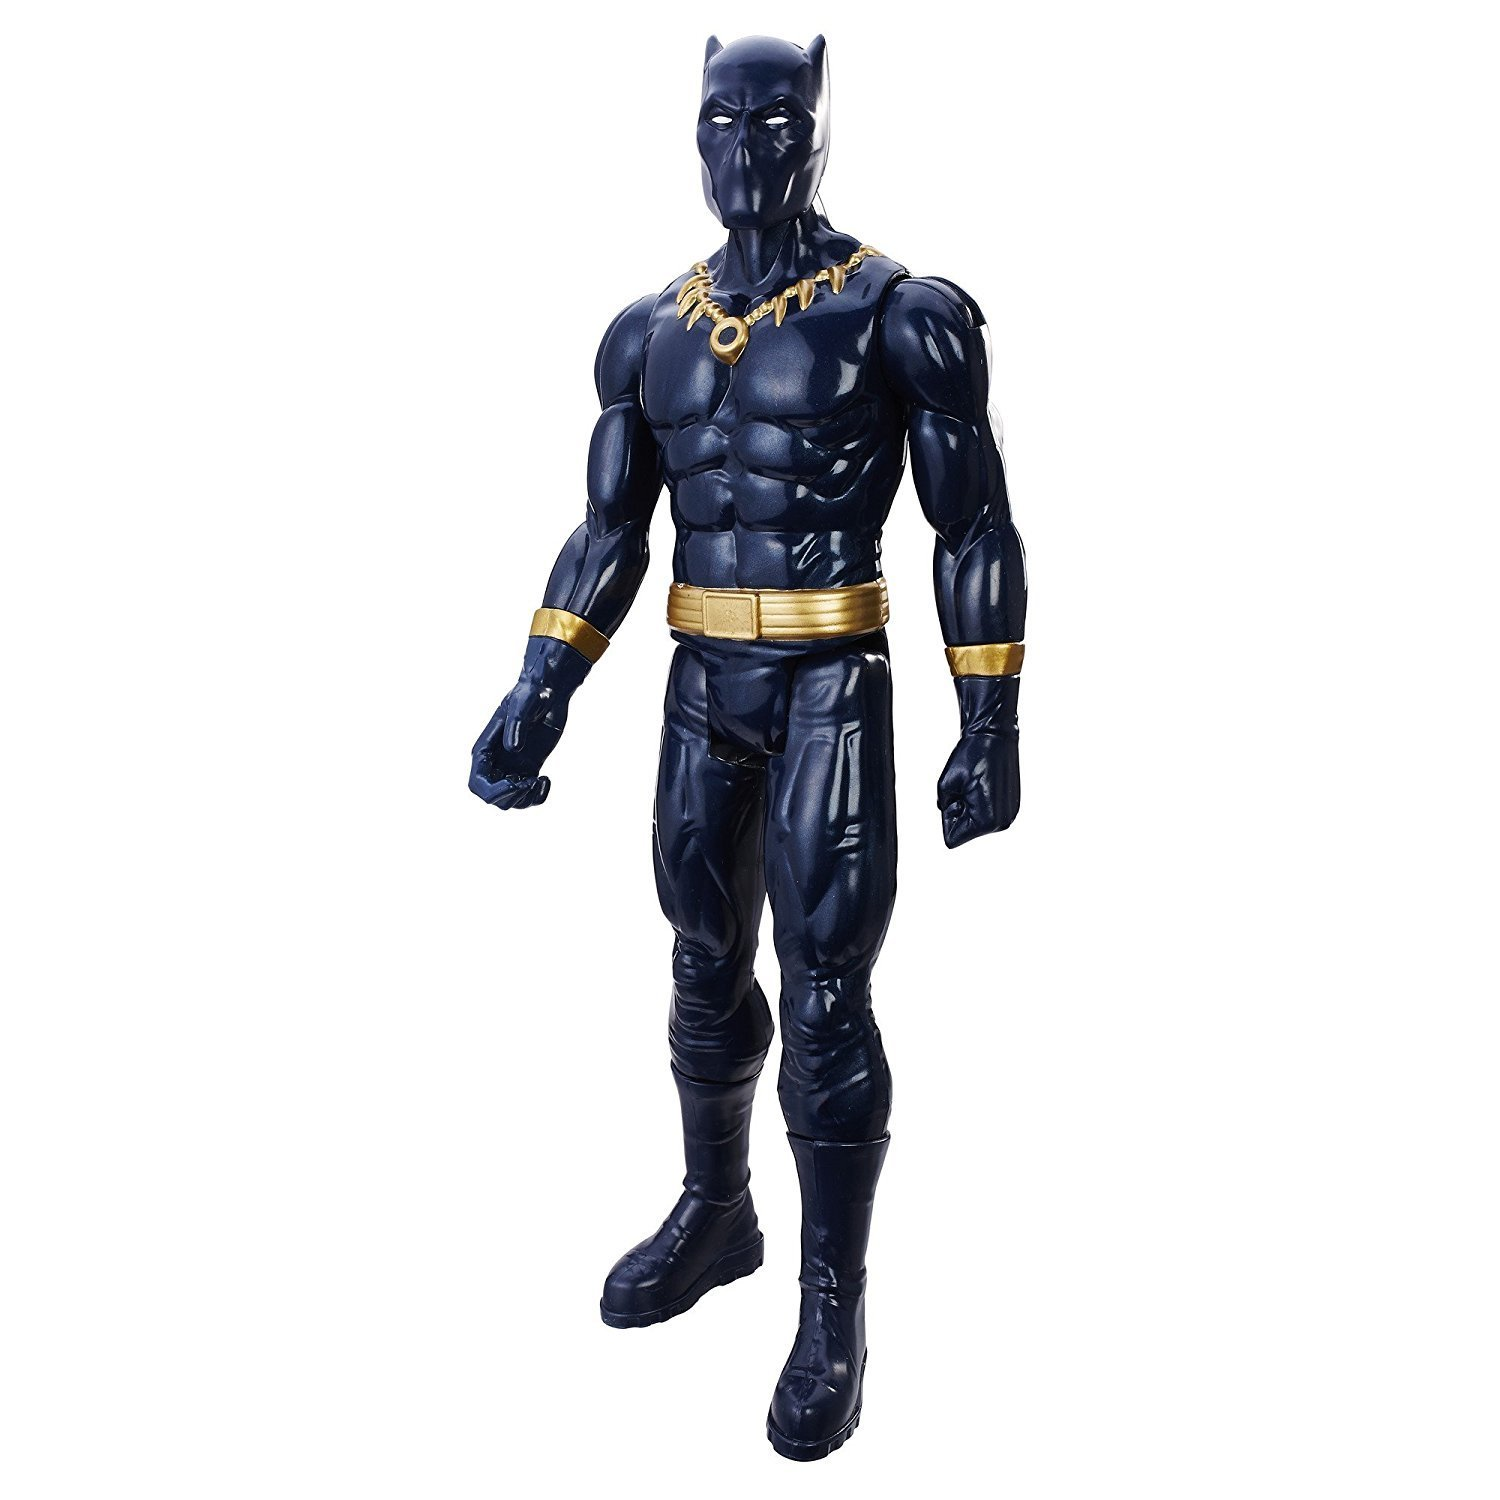 Were $33.50; price has been slashed/  Black Panther, 12-inch figures from the Marvel Titan Hero Series, Super Action Now at $28.50 $5 Discount Plus FREE Shipping